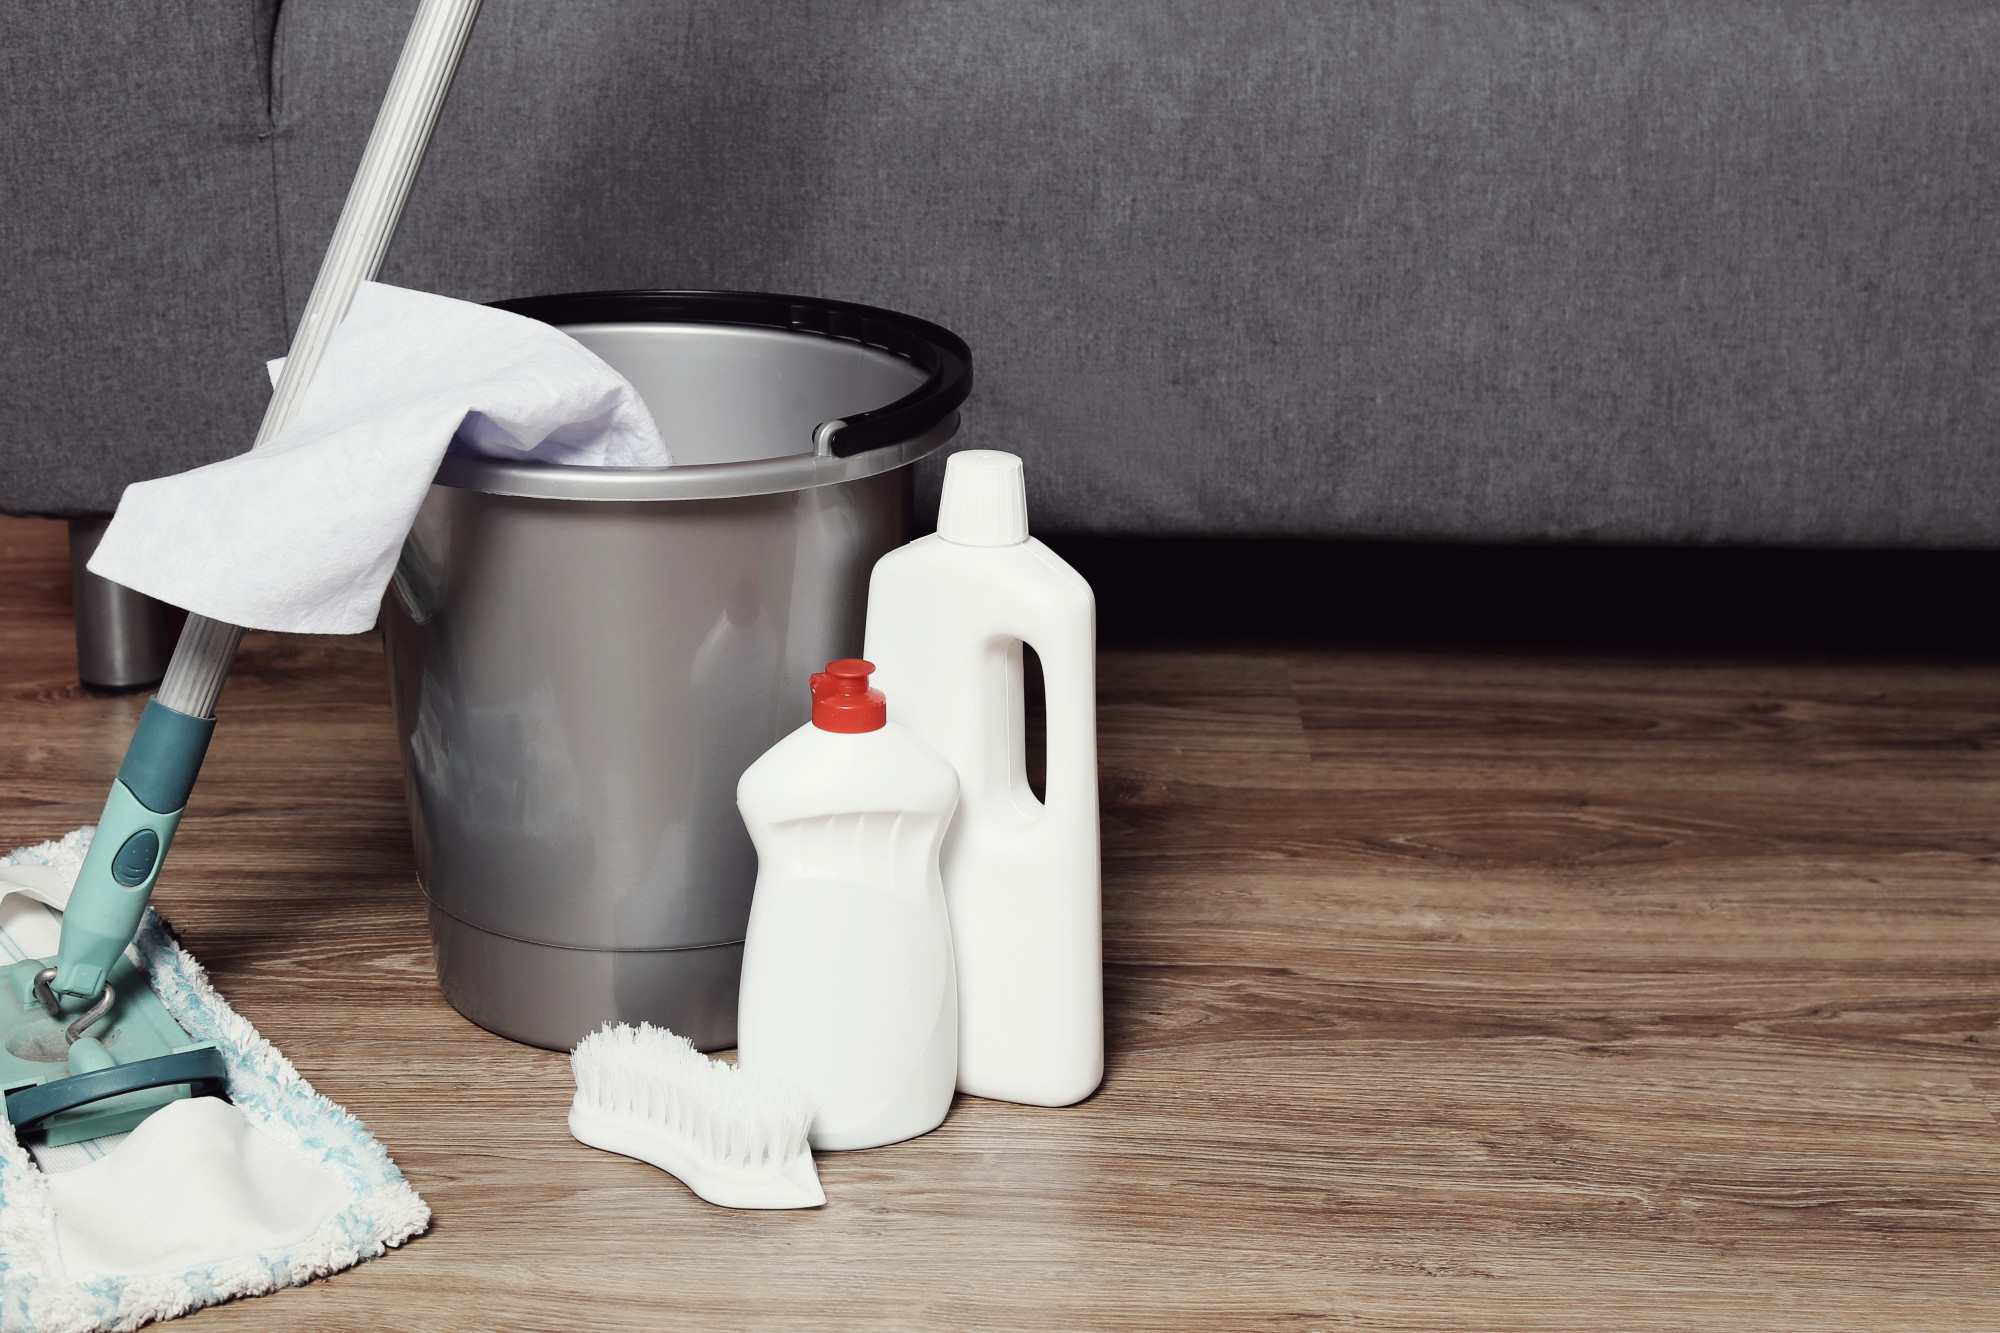 cleaning supplies on wooden floor